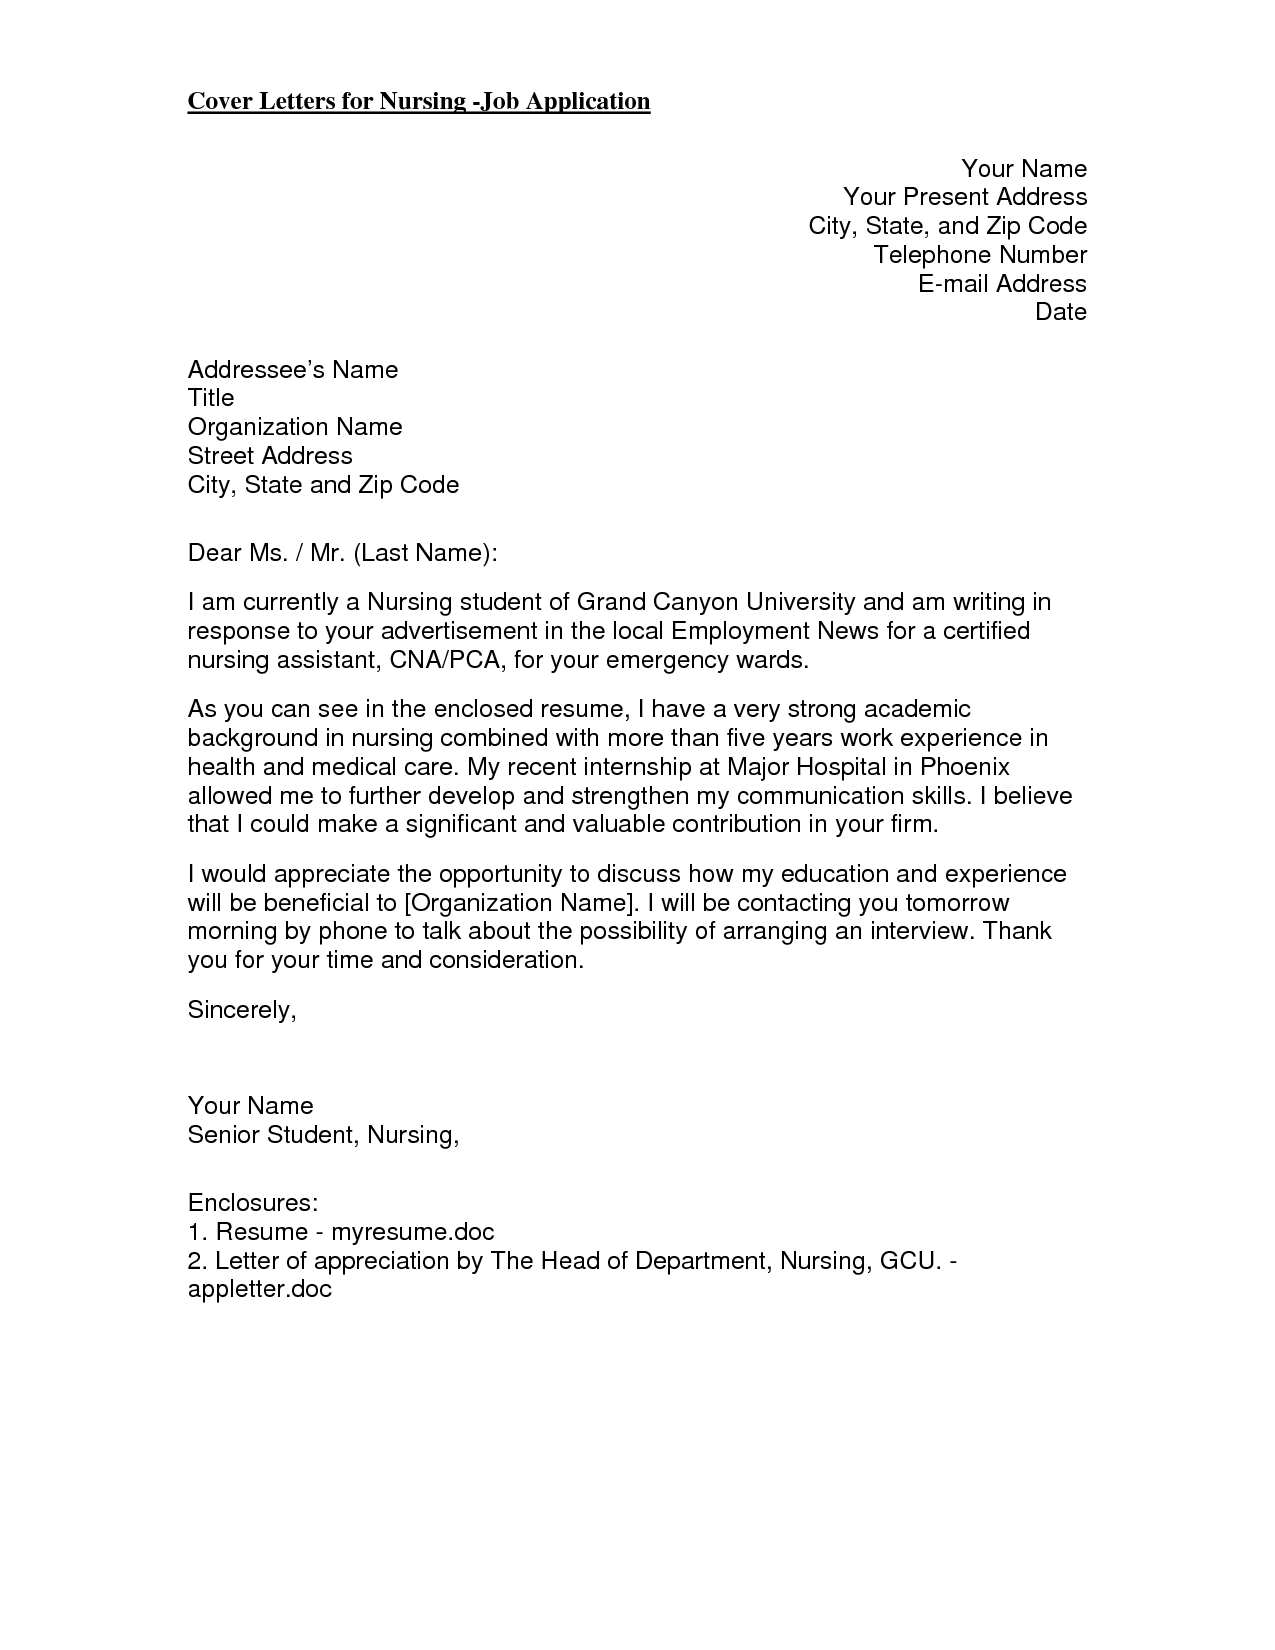 Nursing Cover Letter New Grad That Is Special For You Who Want To Write Employers See Cover Letter For Resume Nursing Cover Letter Resume Cover Letter Examples